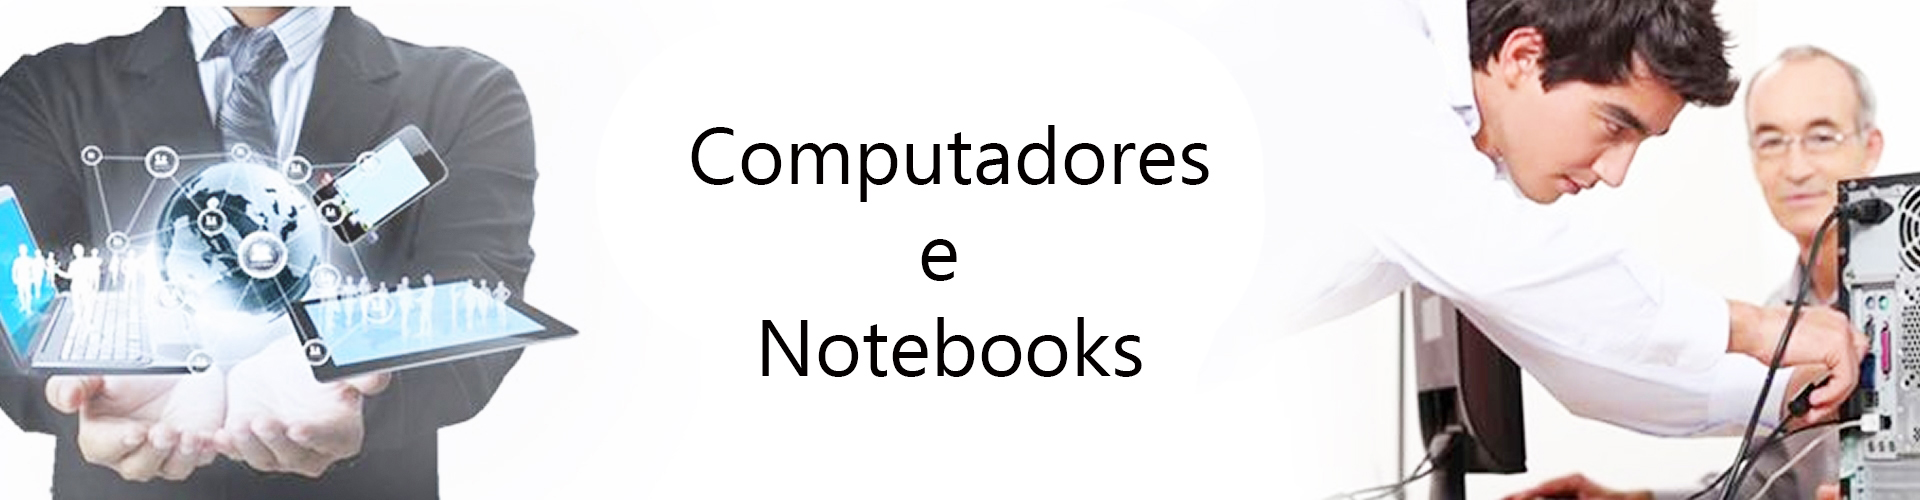 Notebooks e Computadores